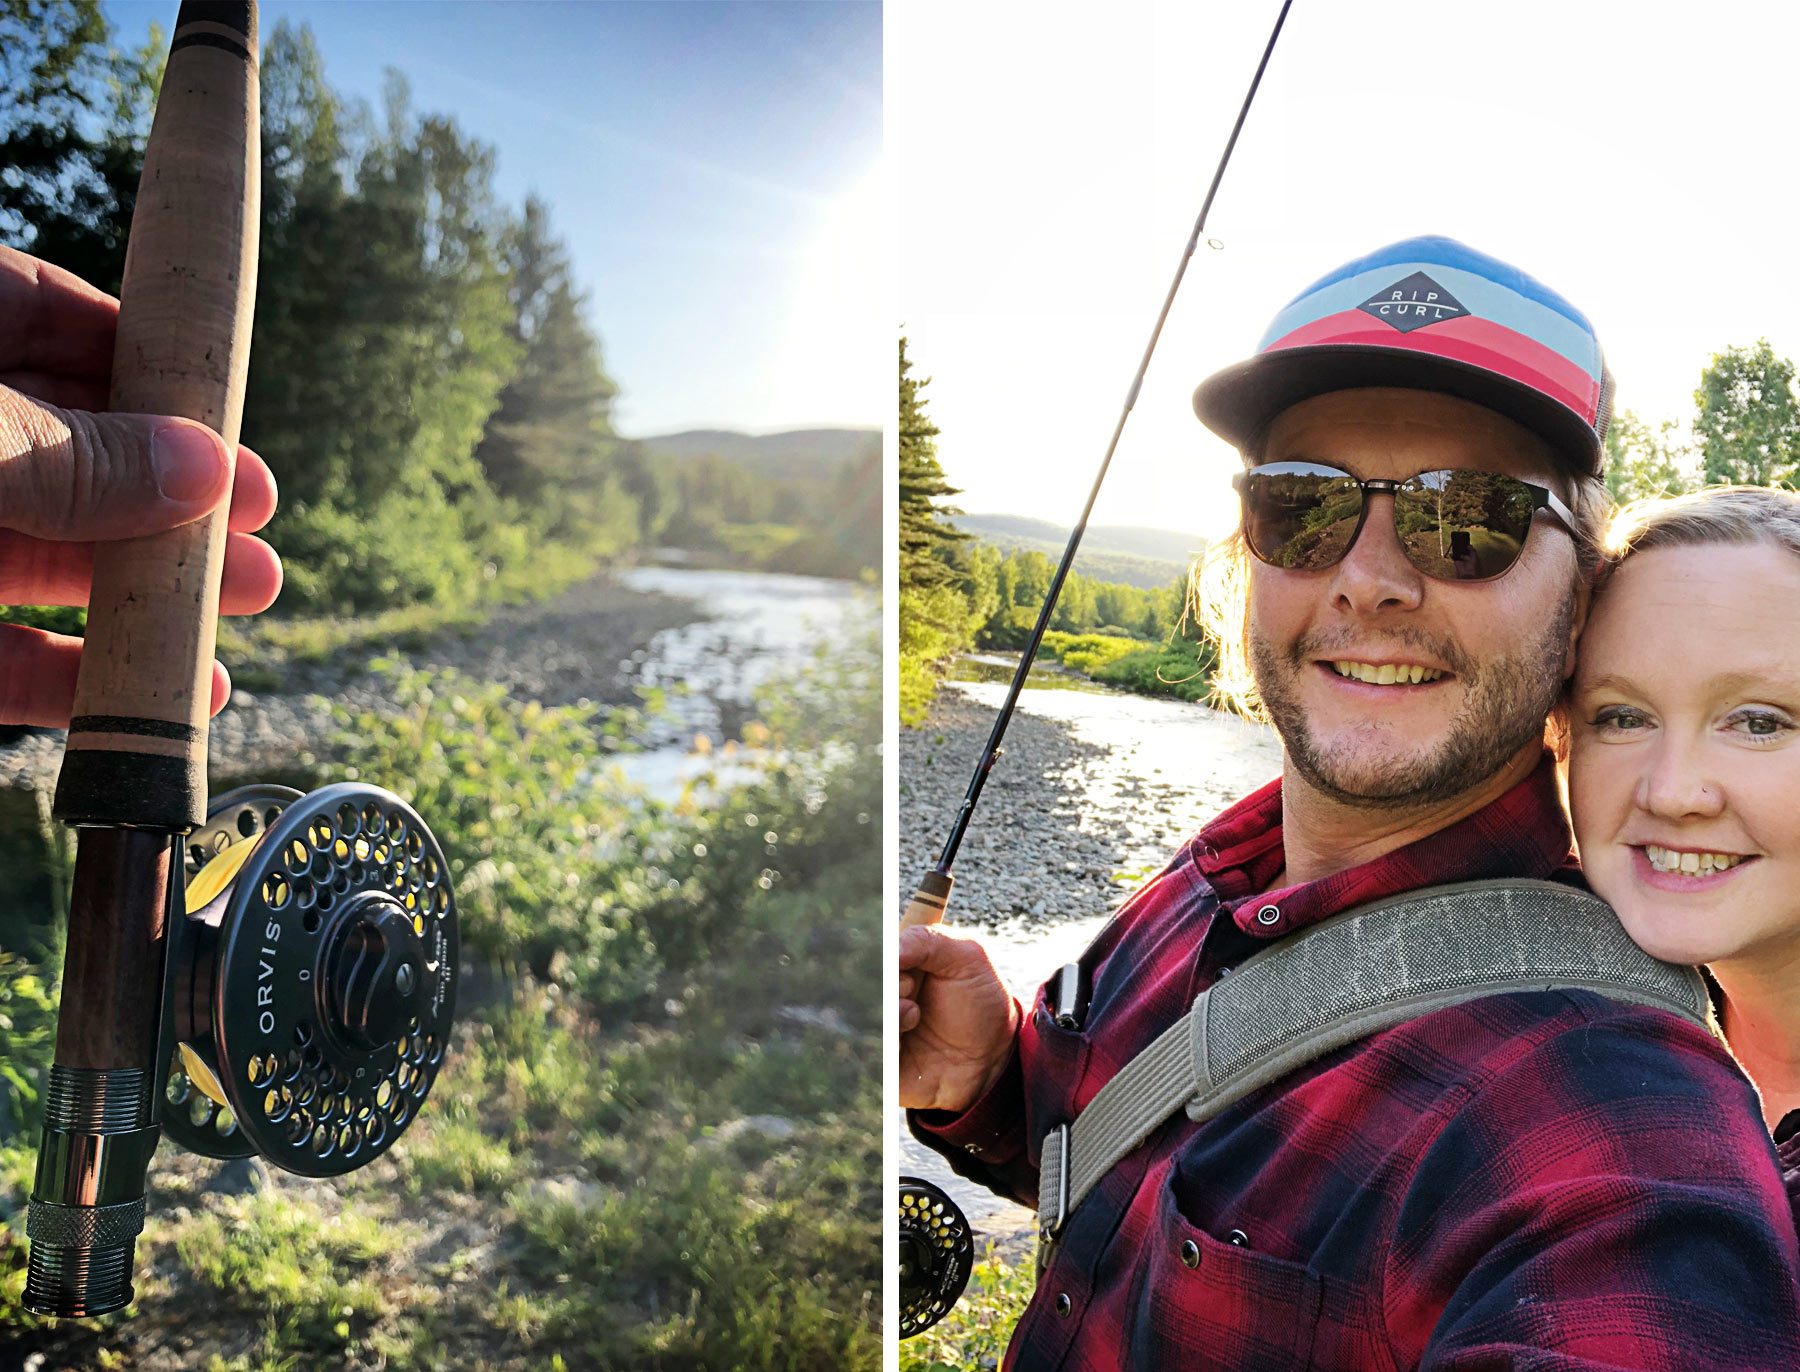 02b-Stowe-Vermont-by-Andrew-Vick-Photography-Summer-Fly-Fishing-River-Stream-Flannel.jpg